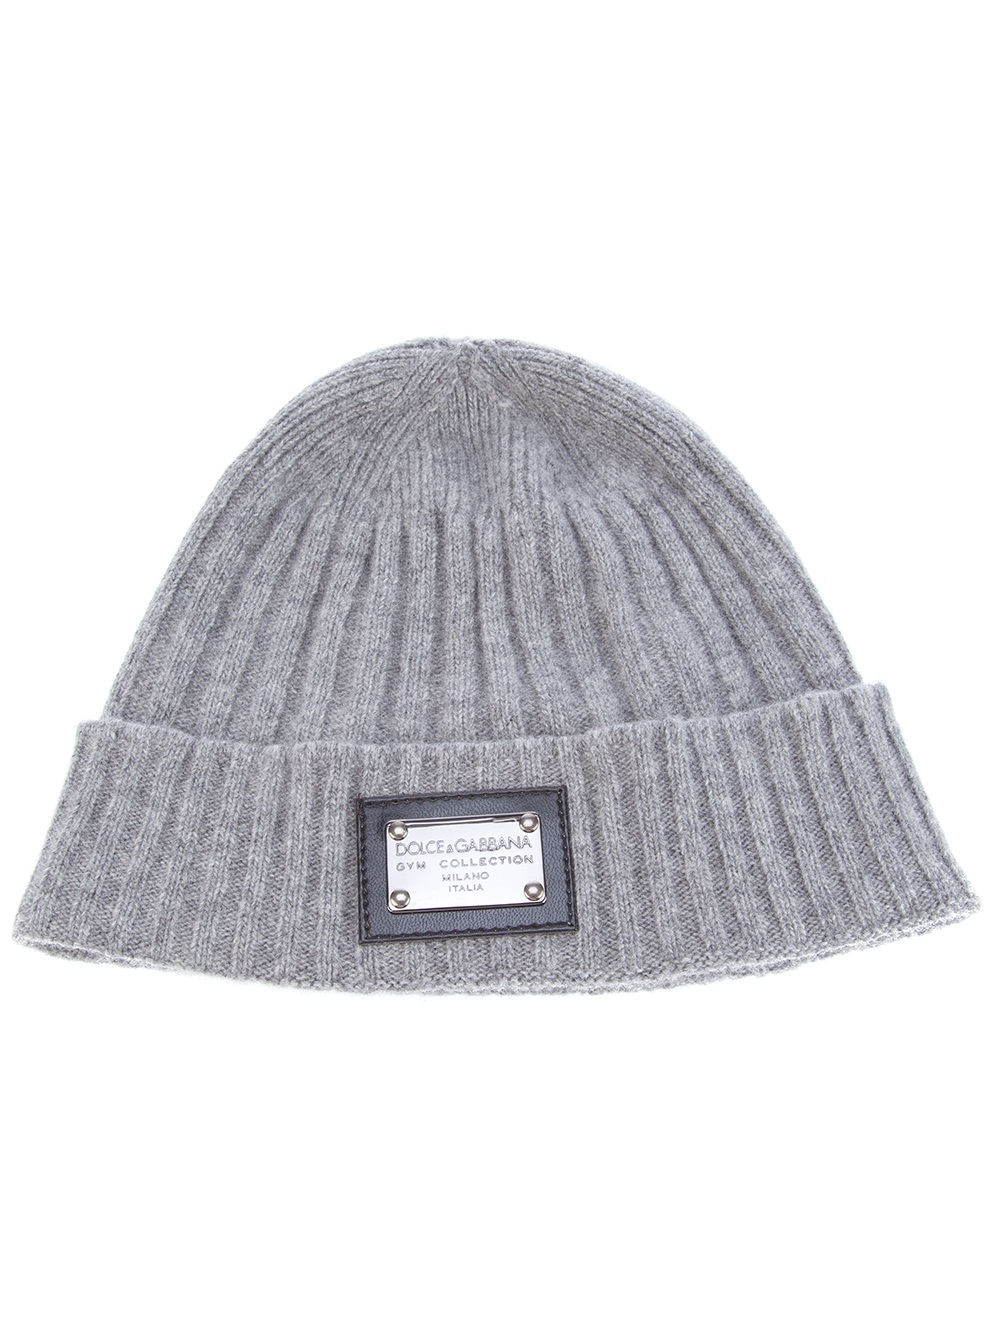 13e3f25d2aa6e Dolce   Gabbana Ribbed Beanie in Gray for Men - Lyst